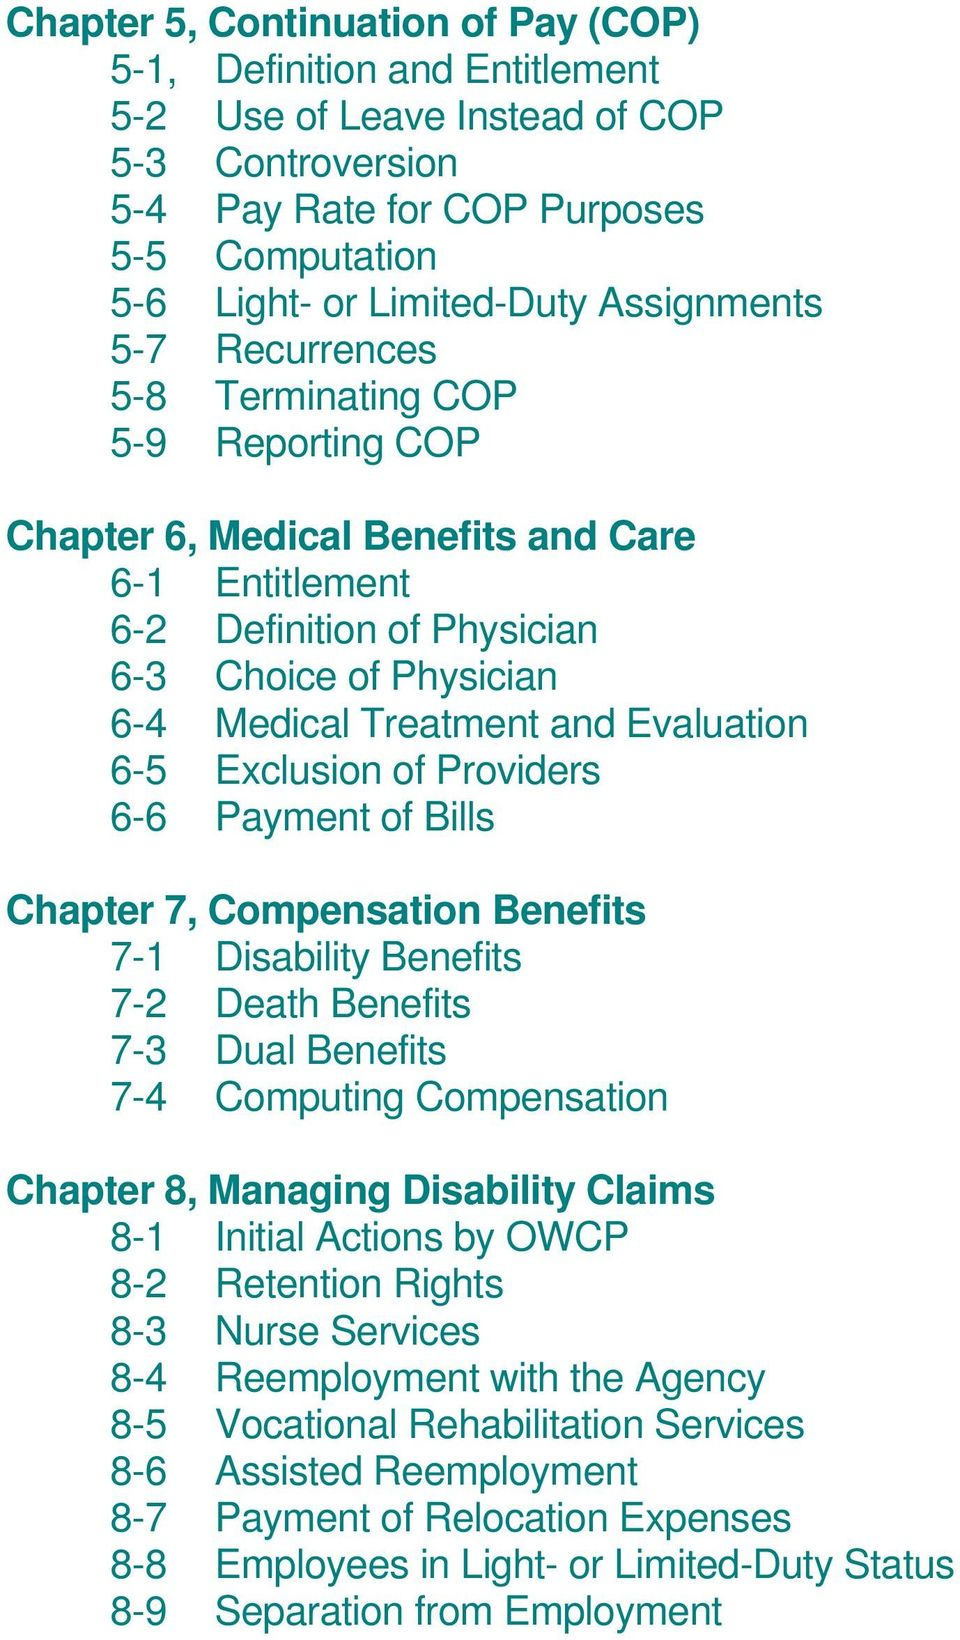 Evaluation 6-5 Exclusion of Providers 6-6 Payment of Bills Chapter 7, Compensation Benefits 7-1 Disability Benefits 7-2 Death Benefits 7-3 Dual Benefits 7-4 Computing Compensation Chapter 8, Managing